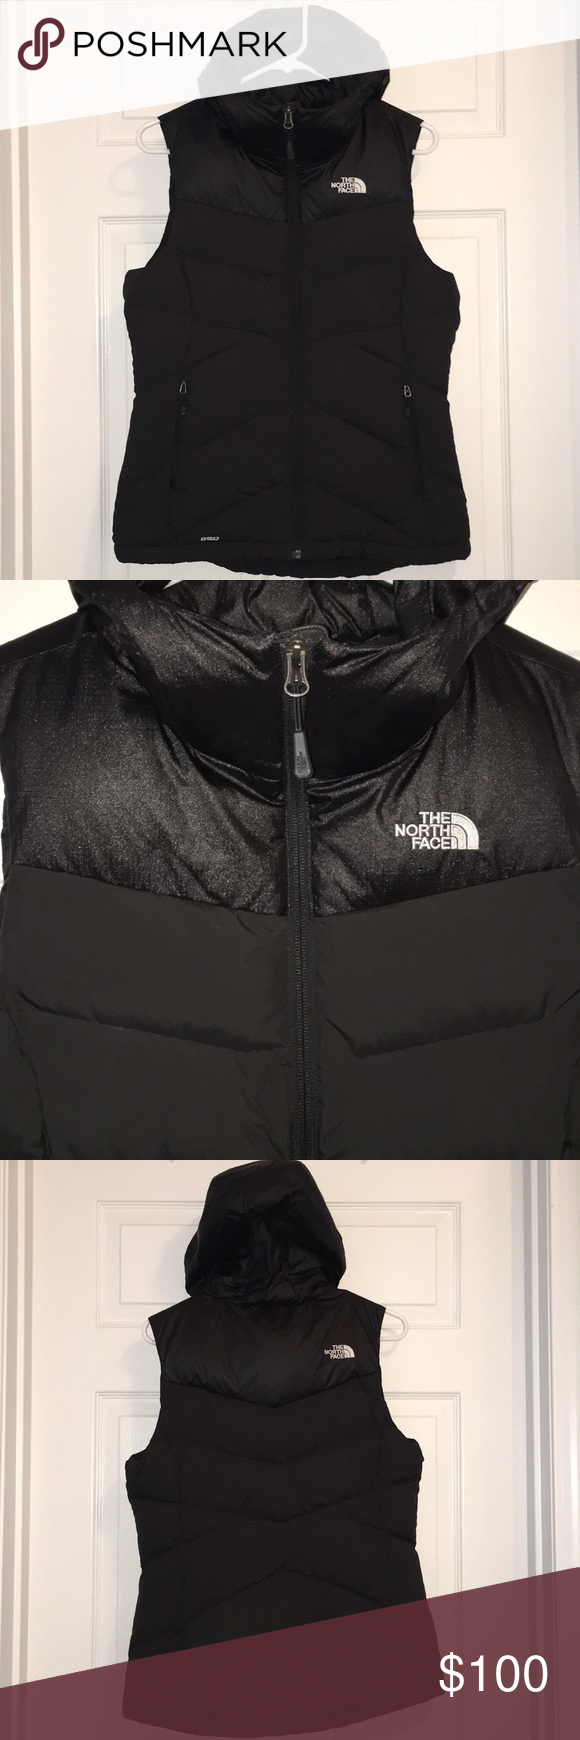 f2509ea72 The North Face Kailash Hooded Vest The North Face Kailash Hooded ...